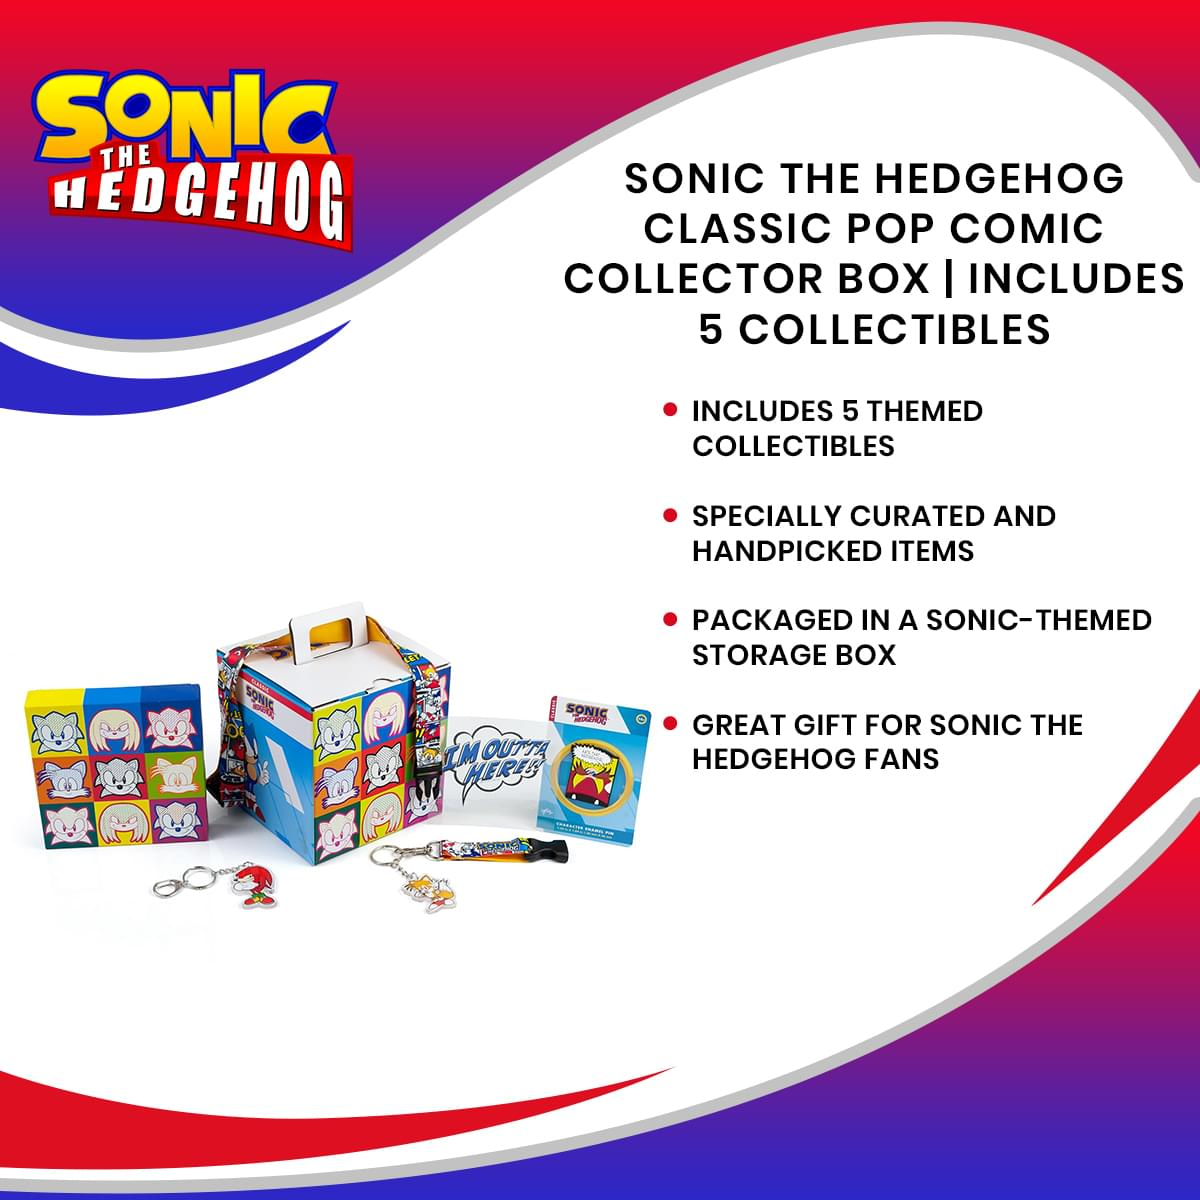 Sonic the Hedgehog Classic Pop Comic Collector Looksee Box | Includes 5 Collectibles